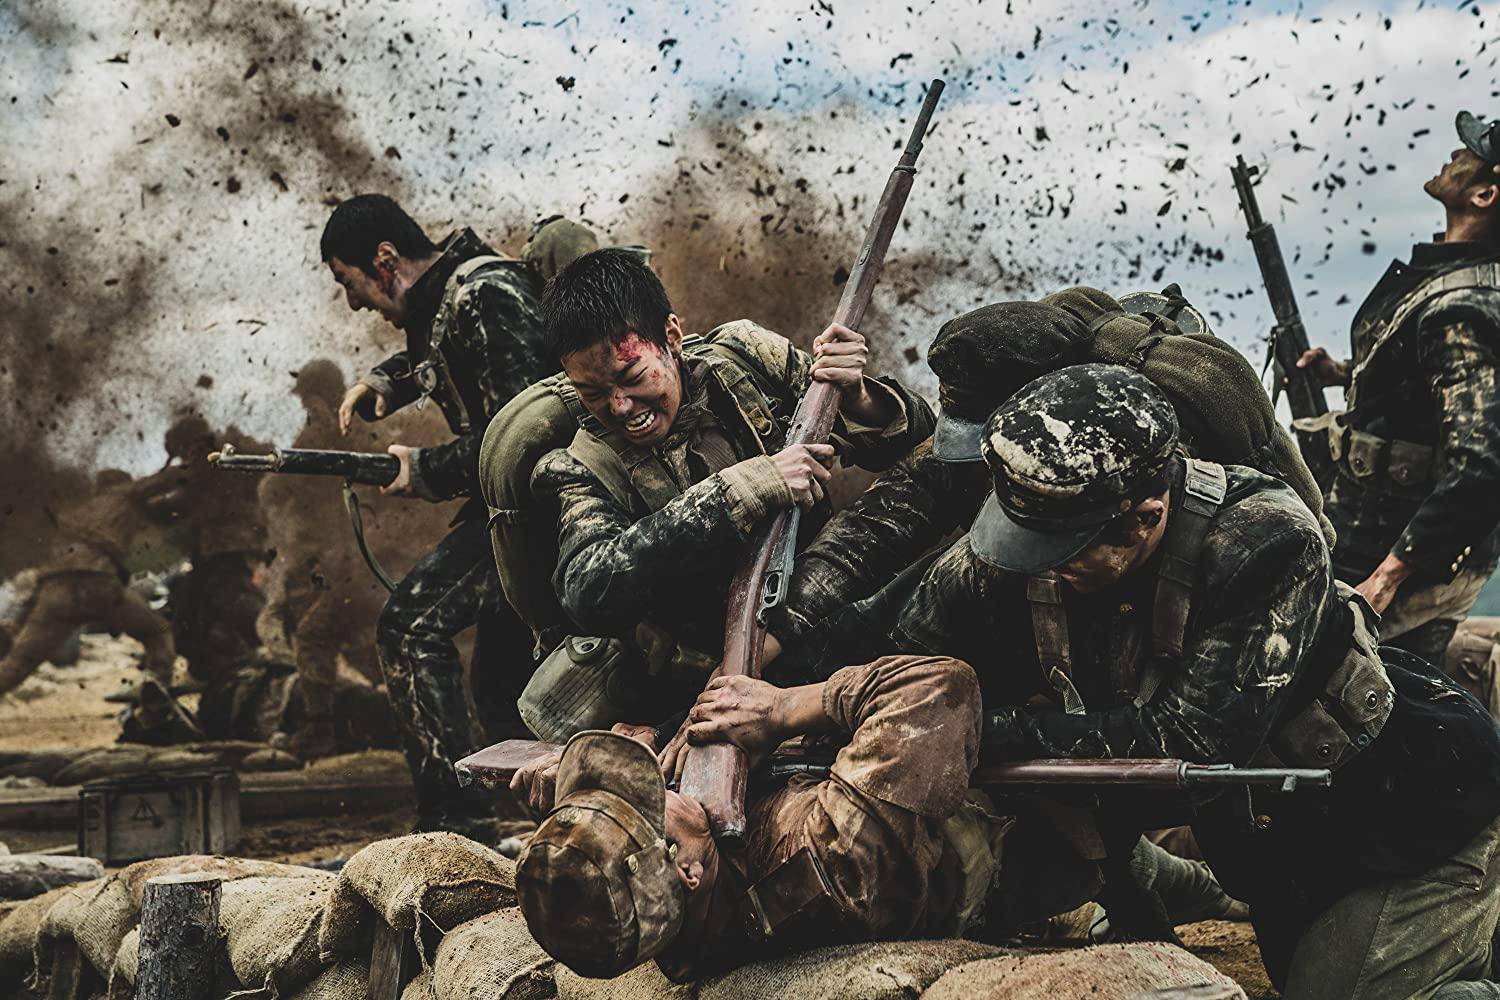 مشاهدة فيلم The Battle of Jangsari (2019) مترجم HD اون لاين